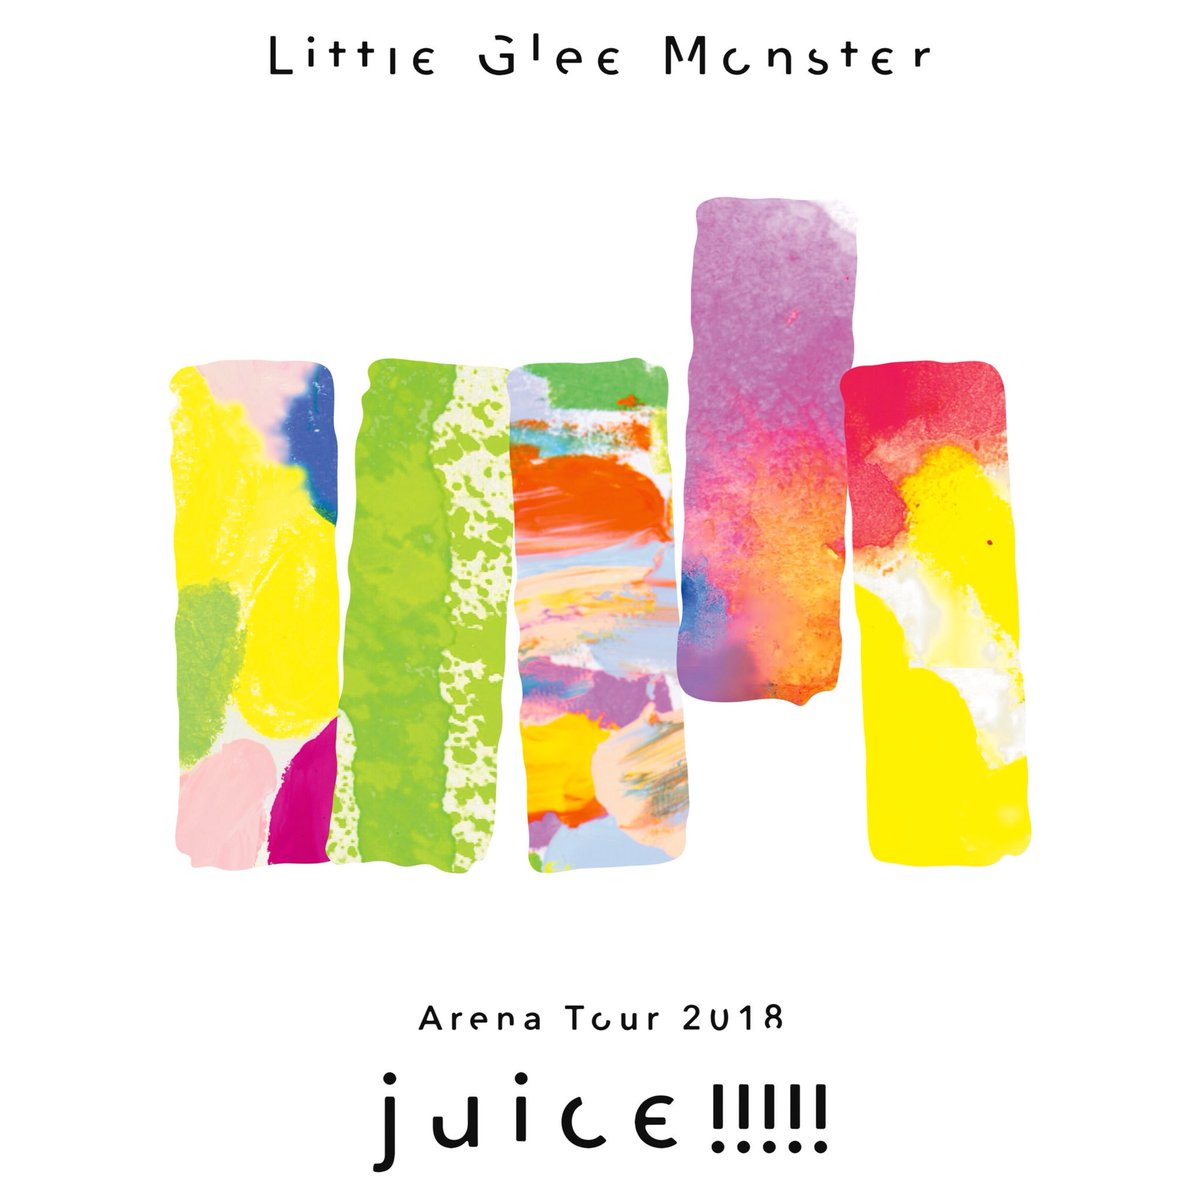 Little Glee Monster Arena Tour 2018 – juice !!!!! – ロゴが完成しました\(^^)/  2/3.4 横浜アリーナ 3/24.25 大阪城ホール DON'T MISS IT ♥  littlegleemonster.com/live2018/